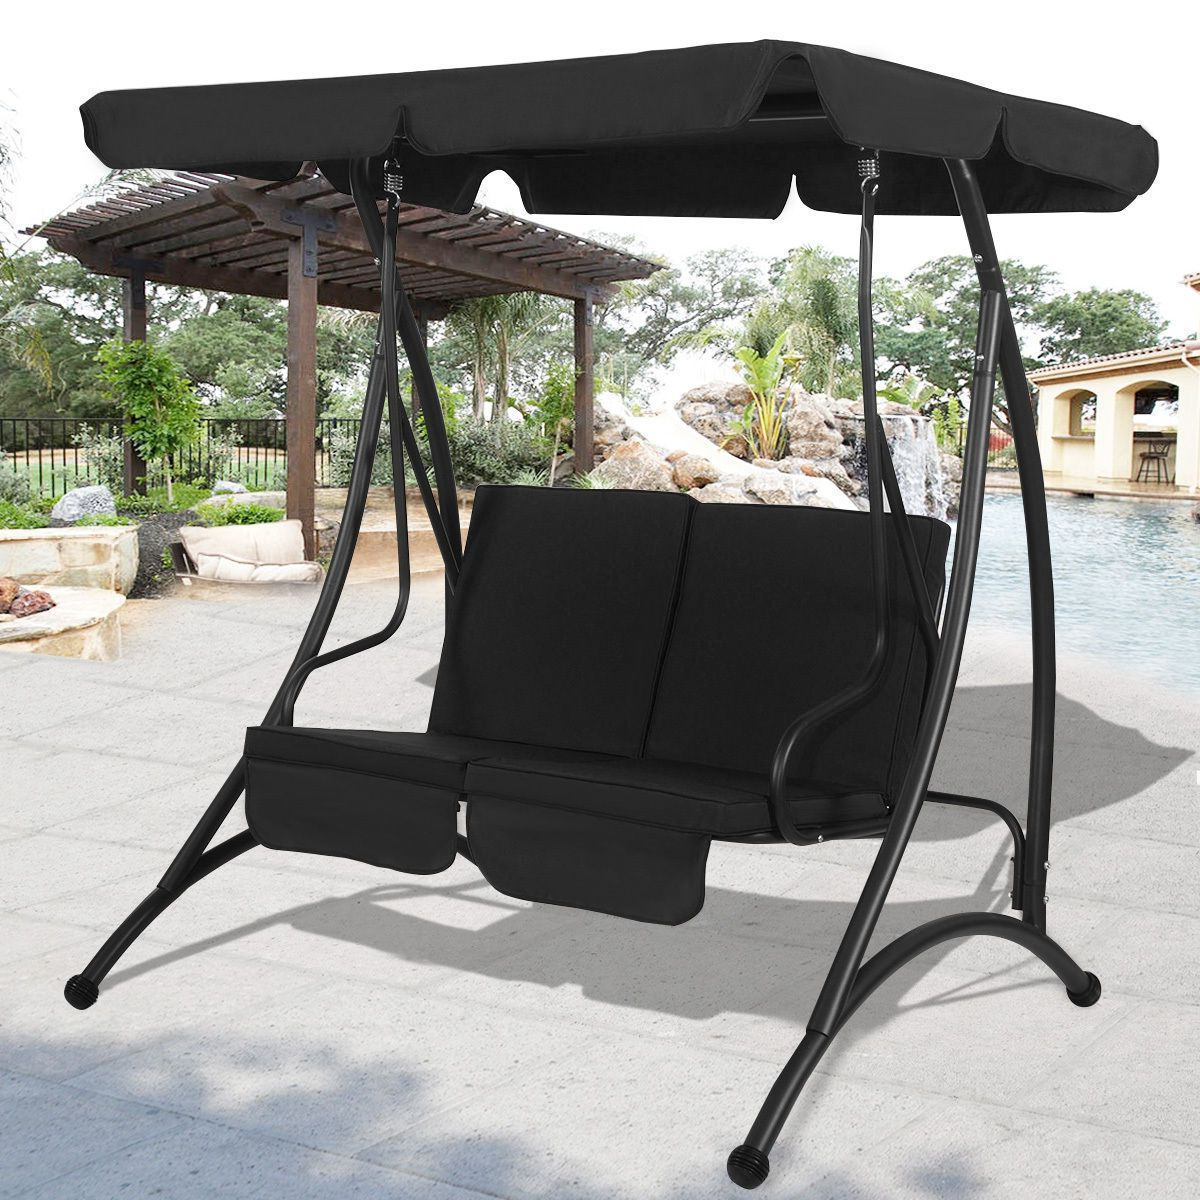 Outdoor Patio Canopy Swing Chair Metal 2 Person Garden Pertaining To Favorite 2 Person Black Steel Outdoor Swings (Gallery 1 of 30)